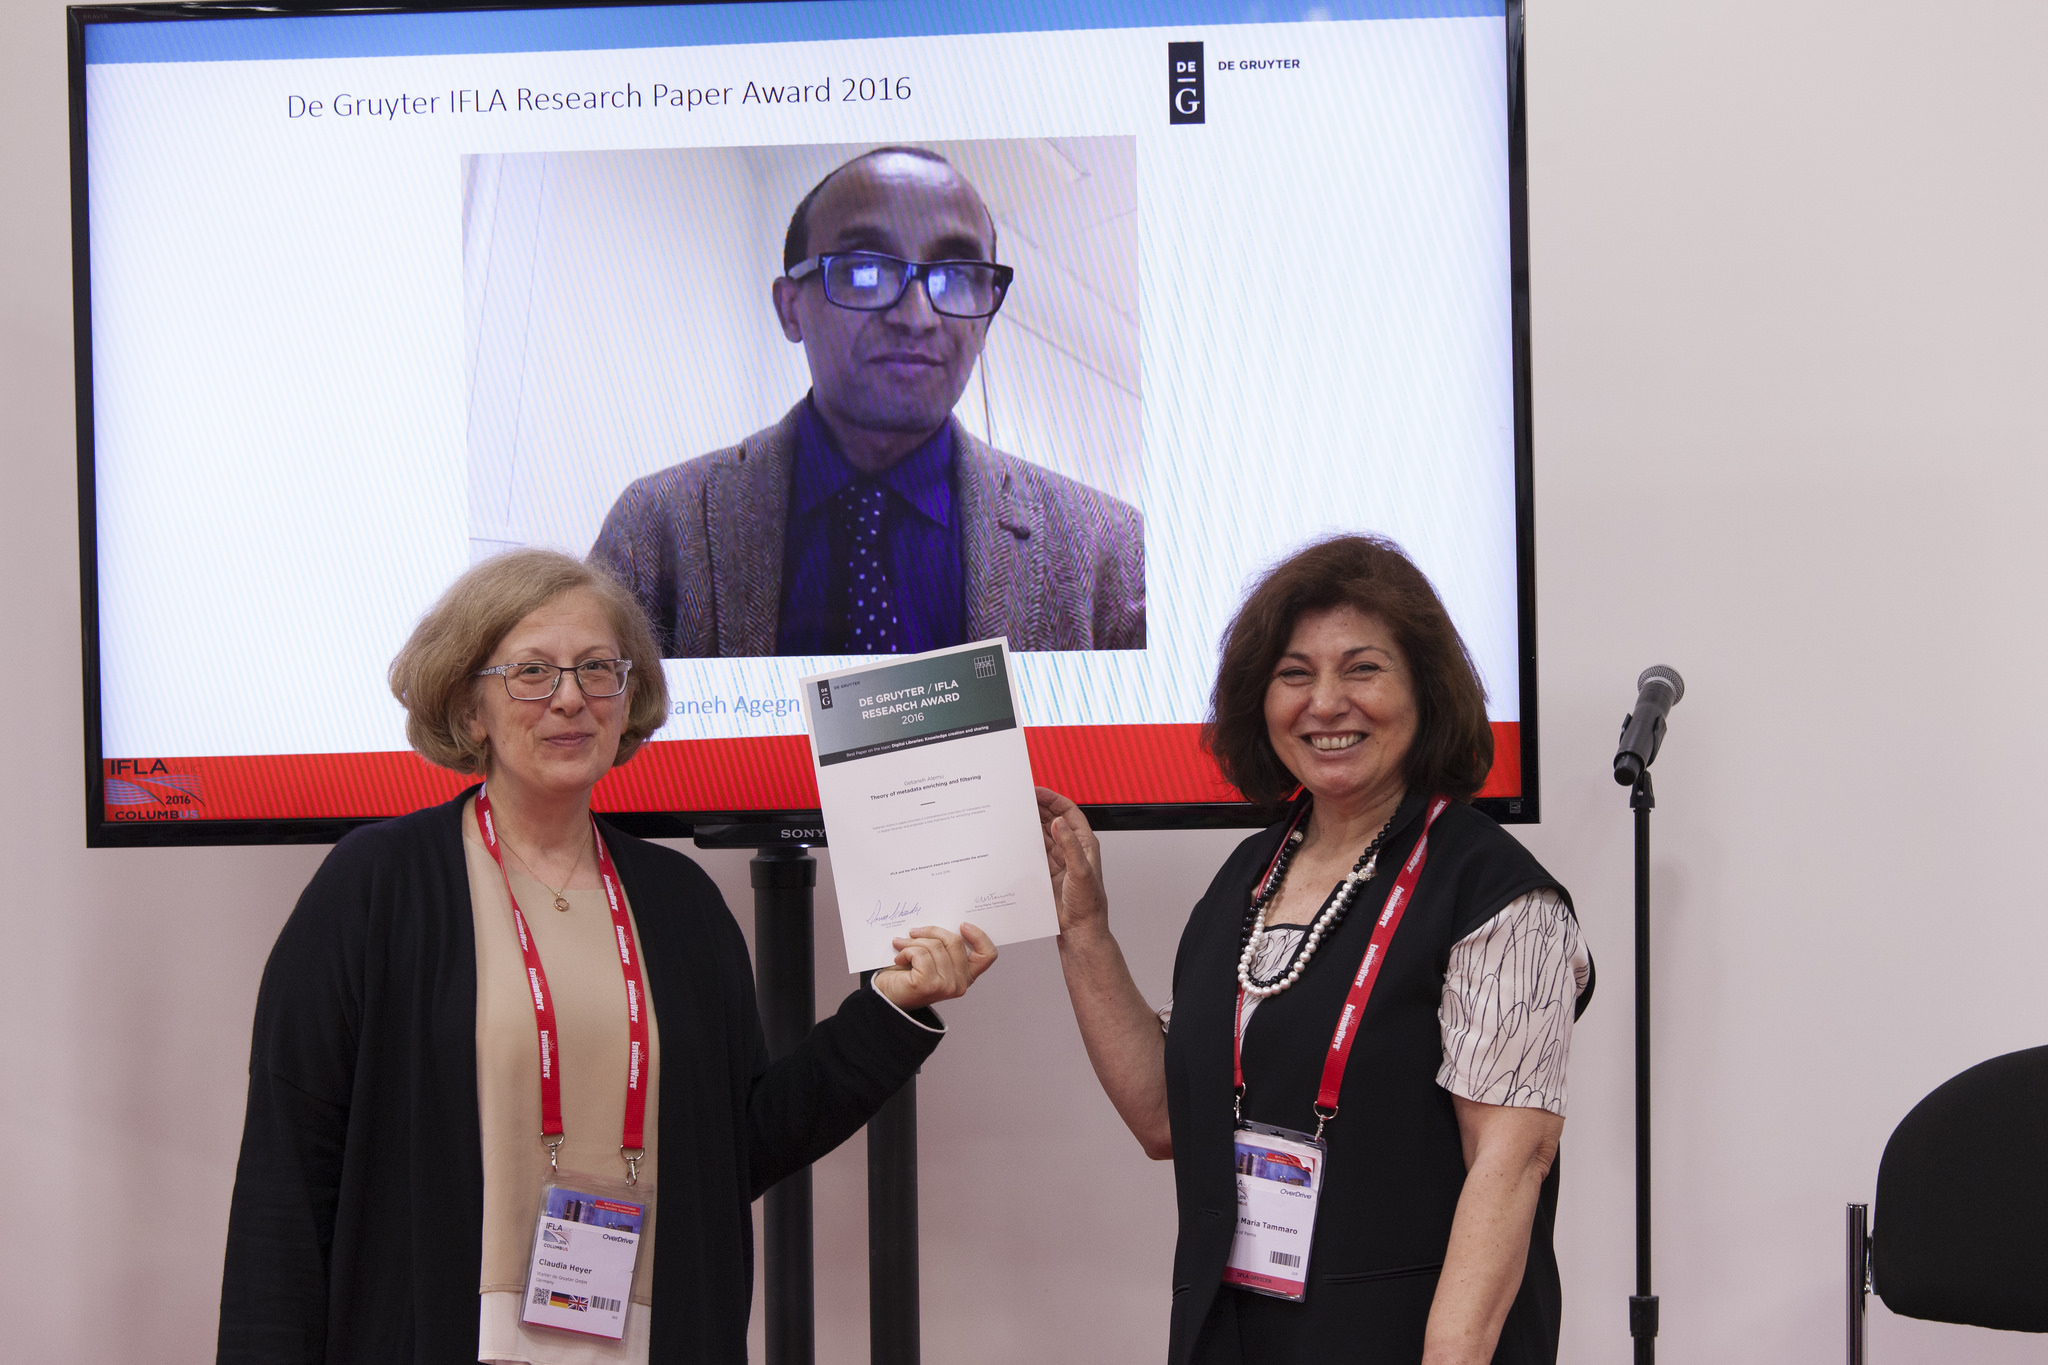 IFLA Awards Session: De Gruyter / IFLA Research Award 2016, August 16, 2016   © Courtesy of Kirstin Krumsee/The International Federation of Library Associations and Institutions (IFLA)/Flickr.